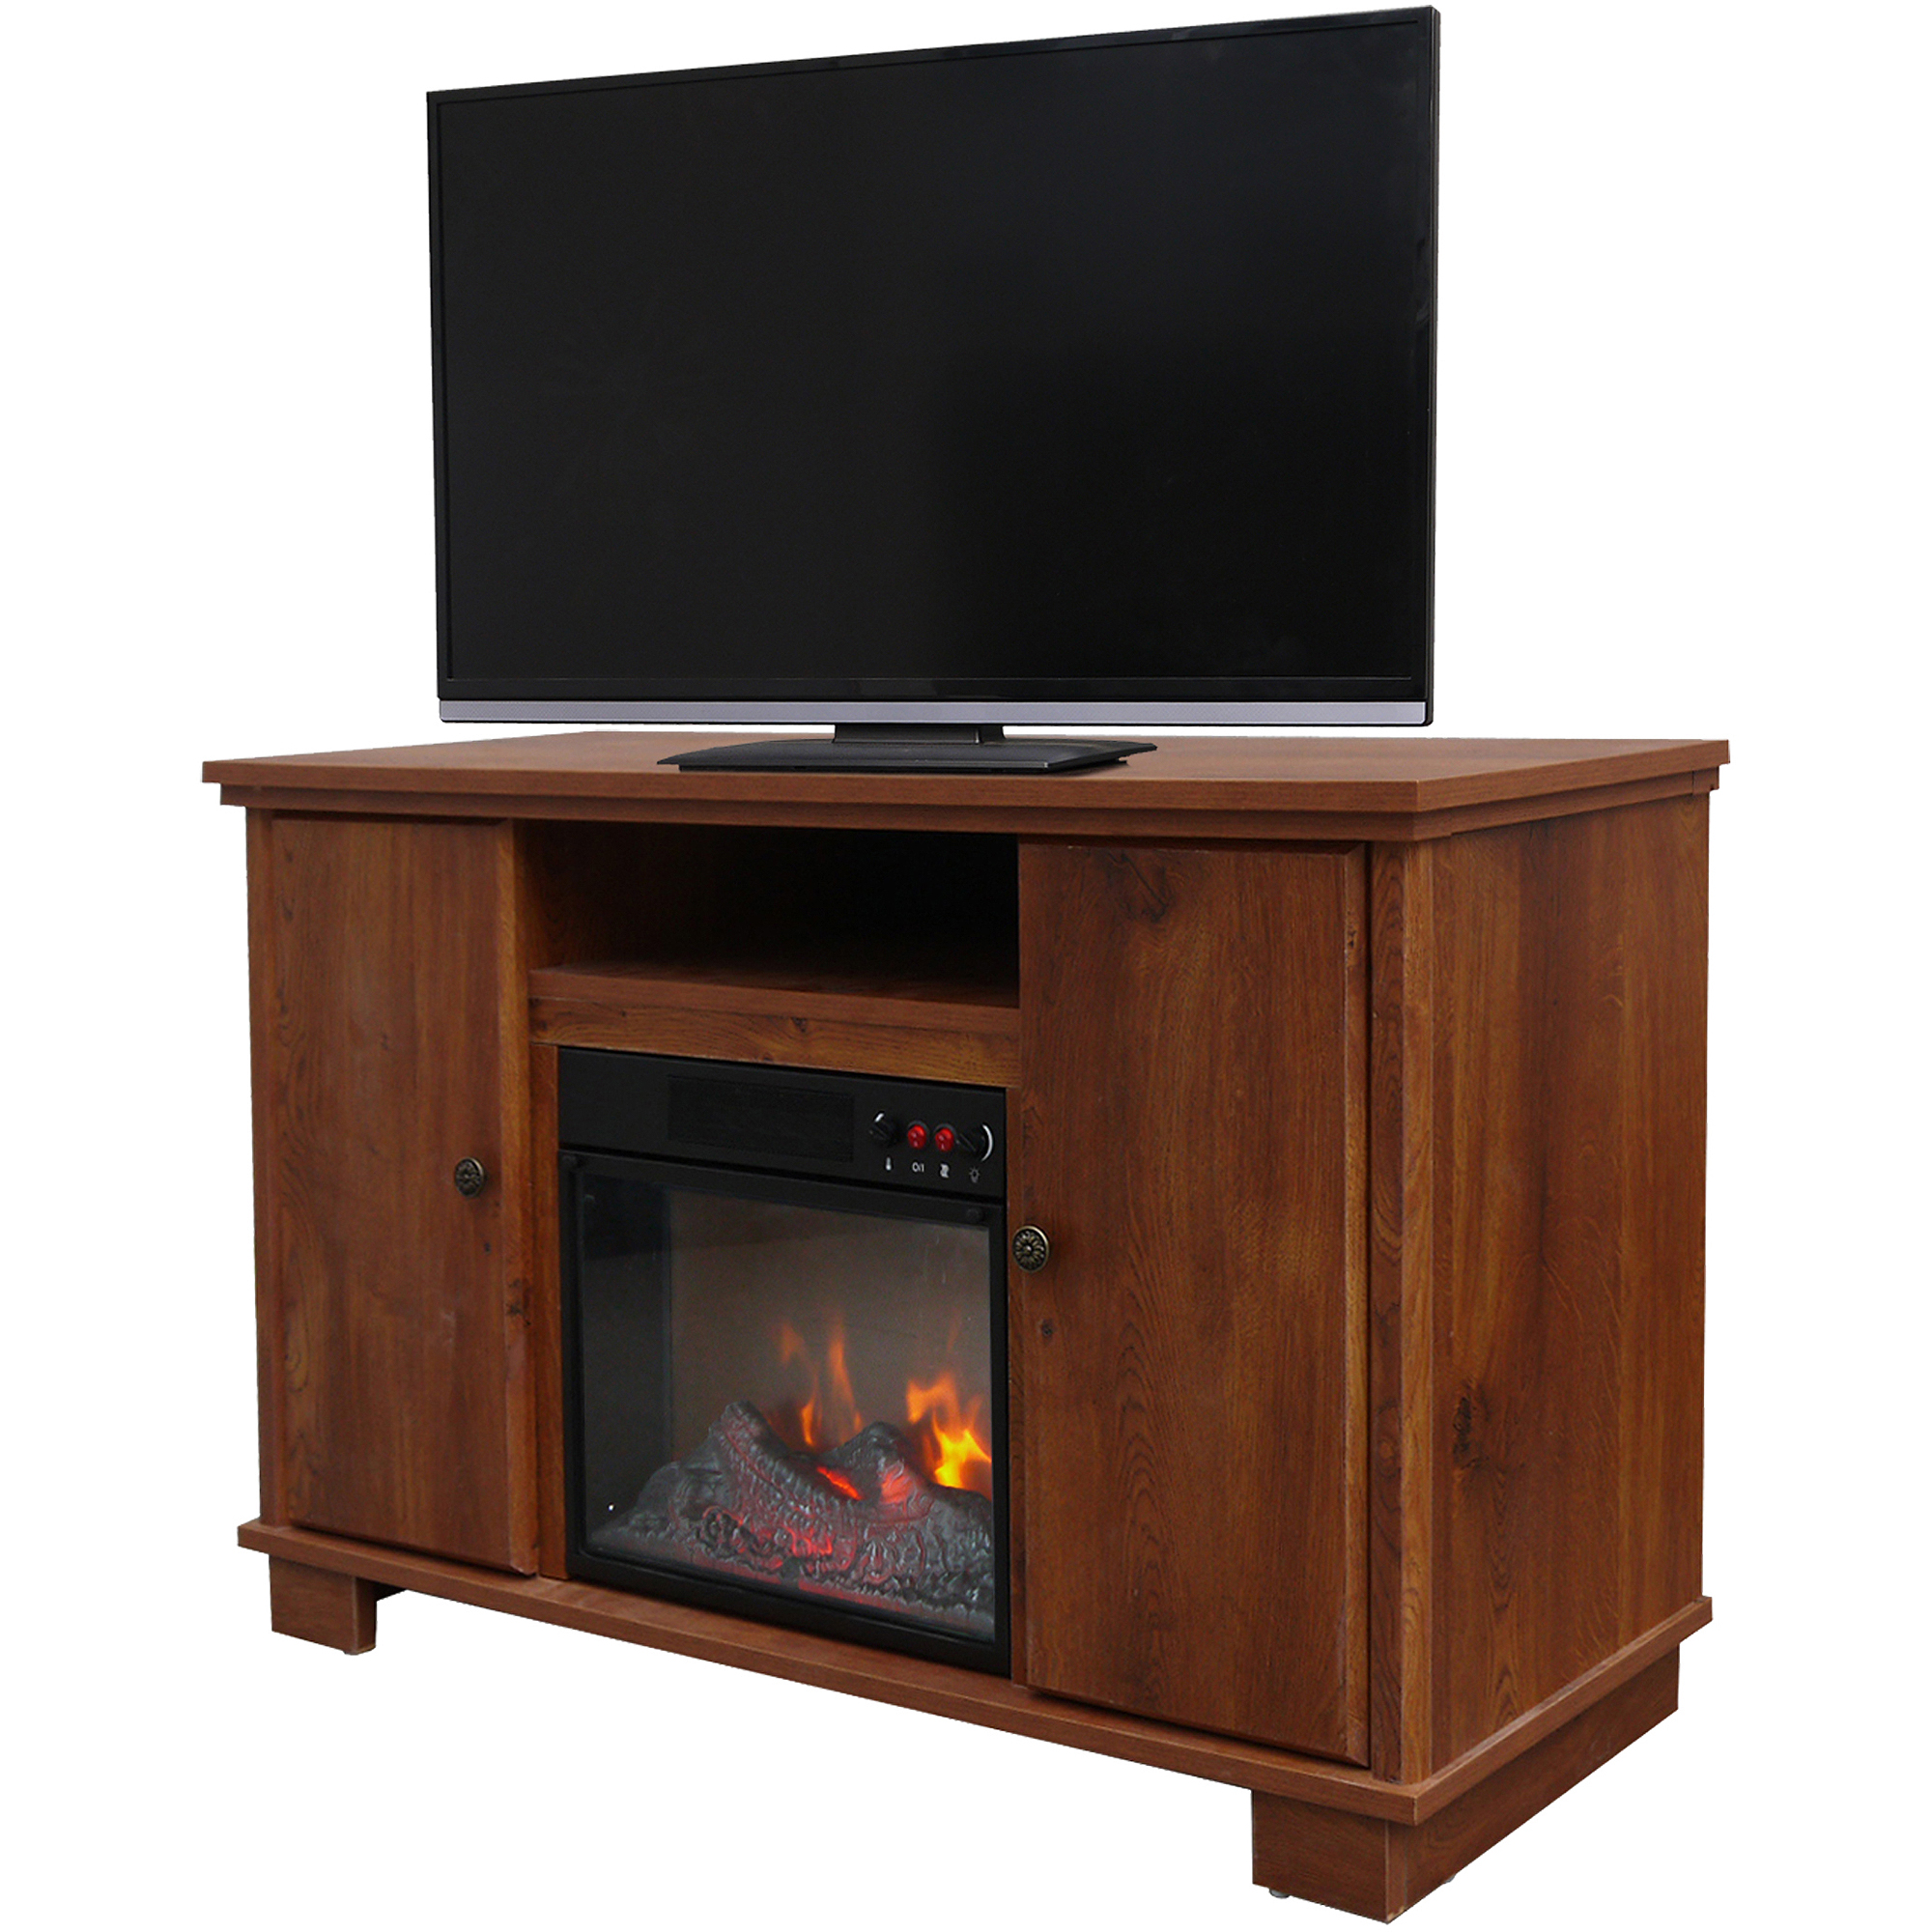 "Décor Flame Yellowknife 48"" Media Fireplace, for TVs up to 55"", Oak"